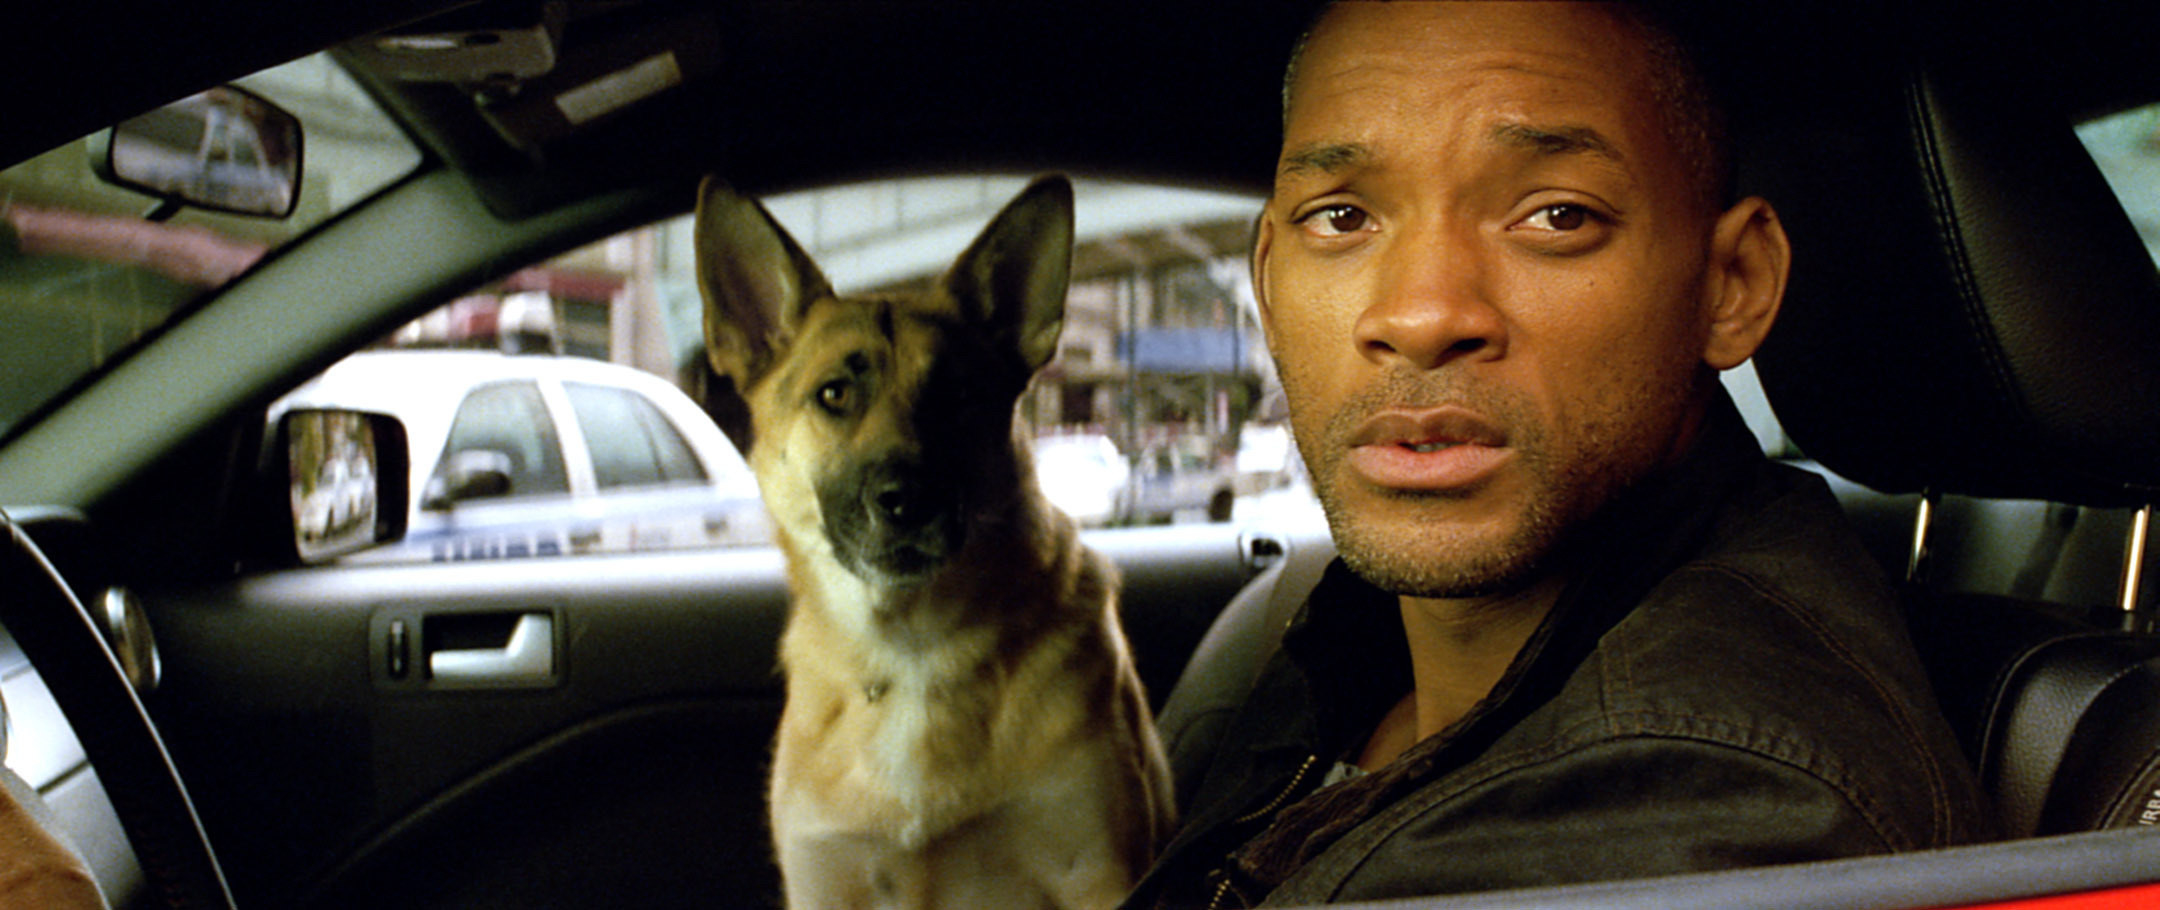 Will Smith and his dog in a car